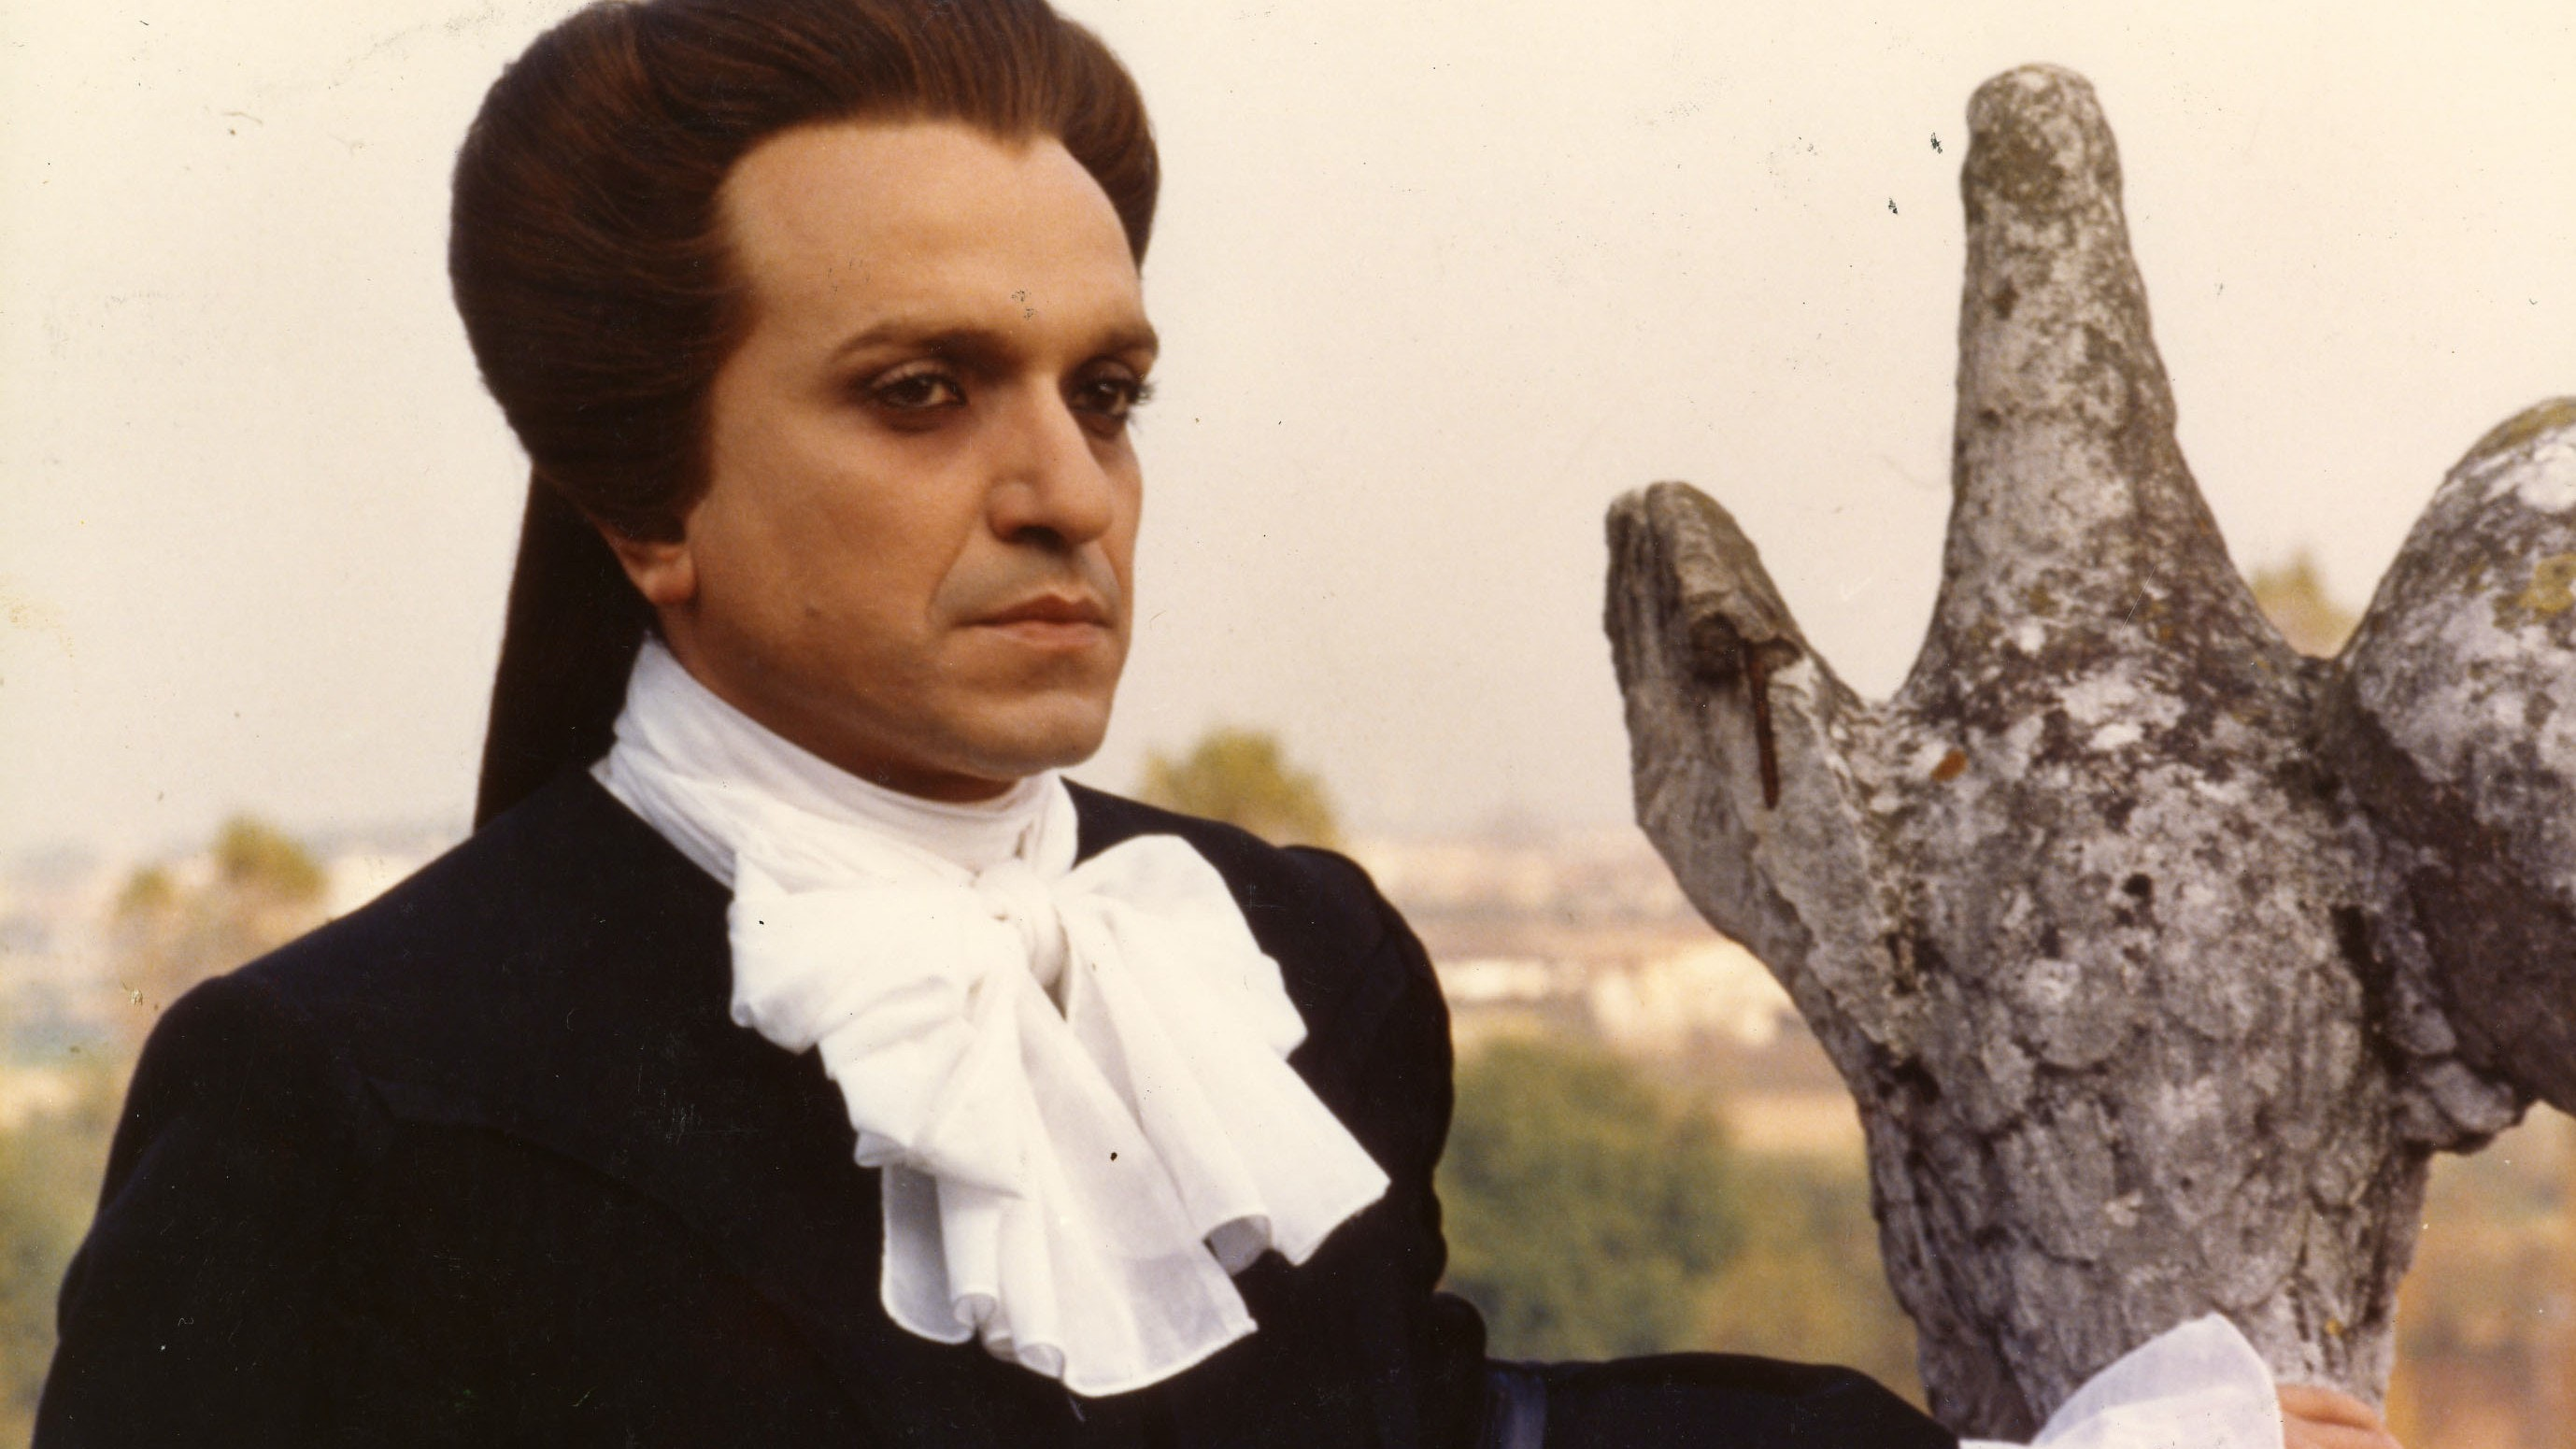 Mozart's Don Giovanni – A Film by Joseph Losey